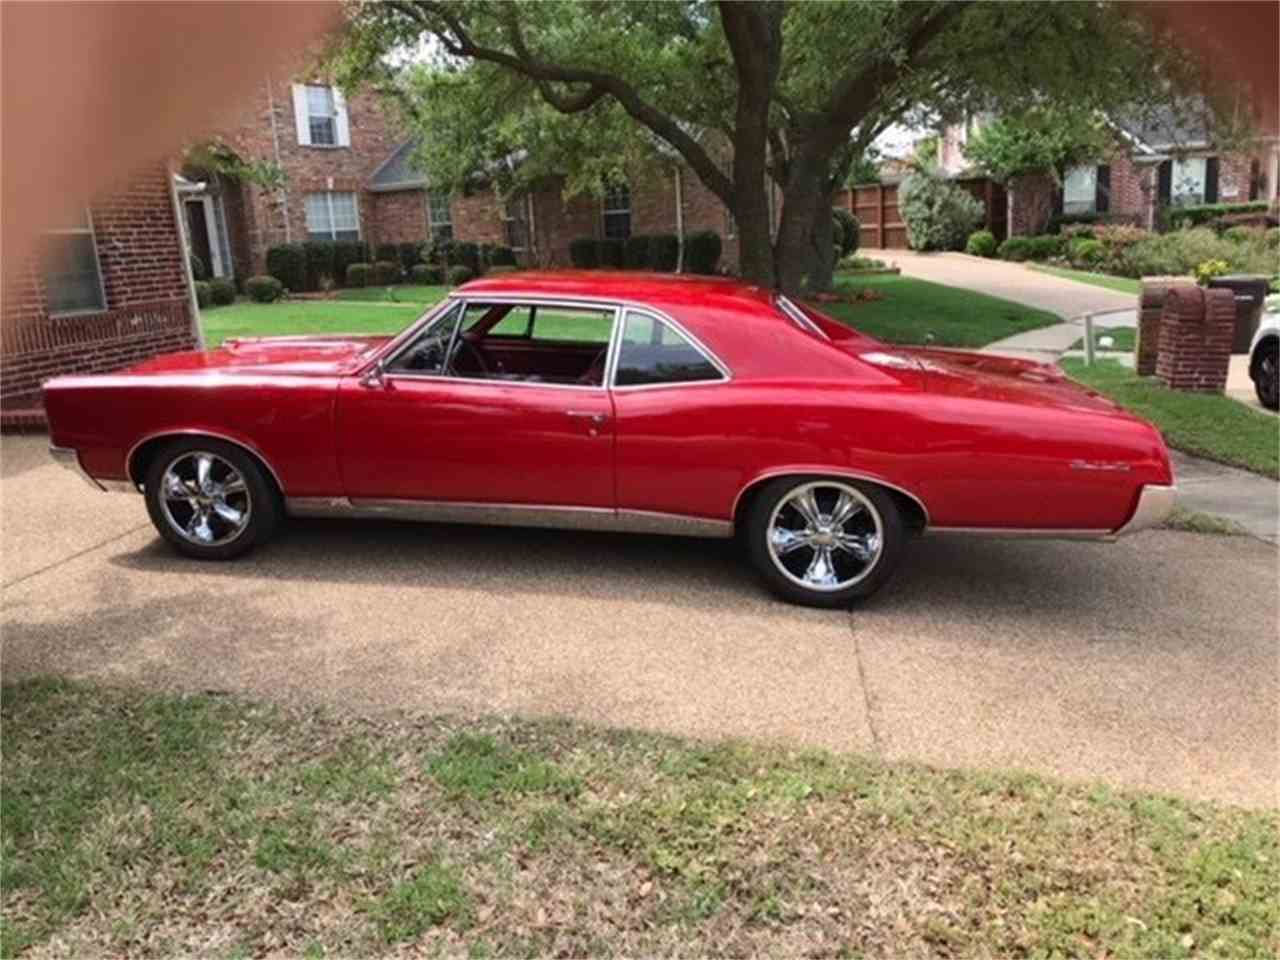 Large Picture of 1967 GTO located in Florida Auction Vehicle Offered by Premier Auction Group - NFHO